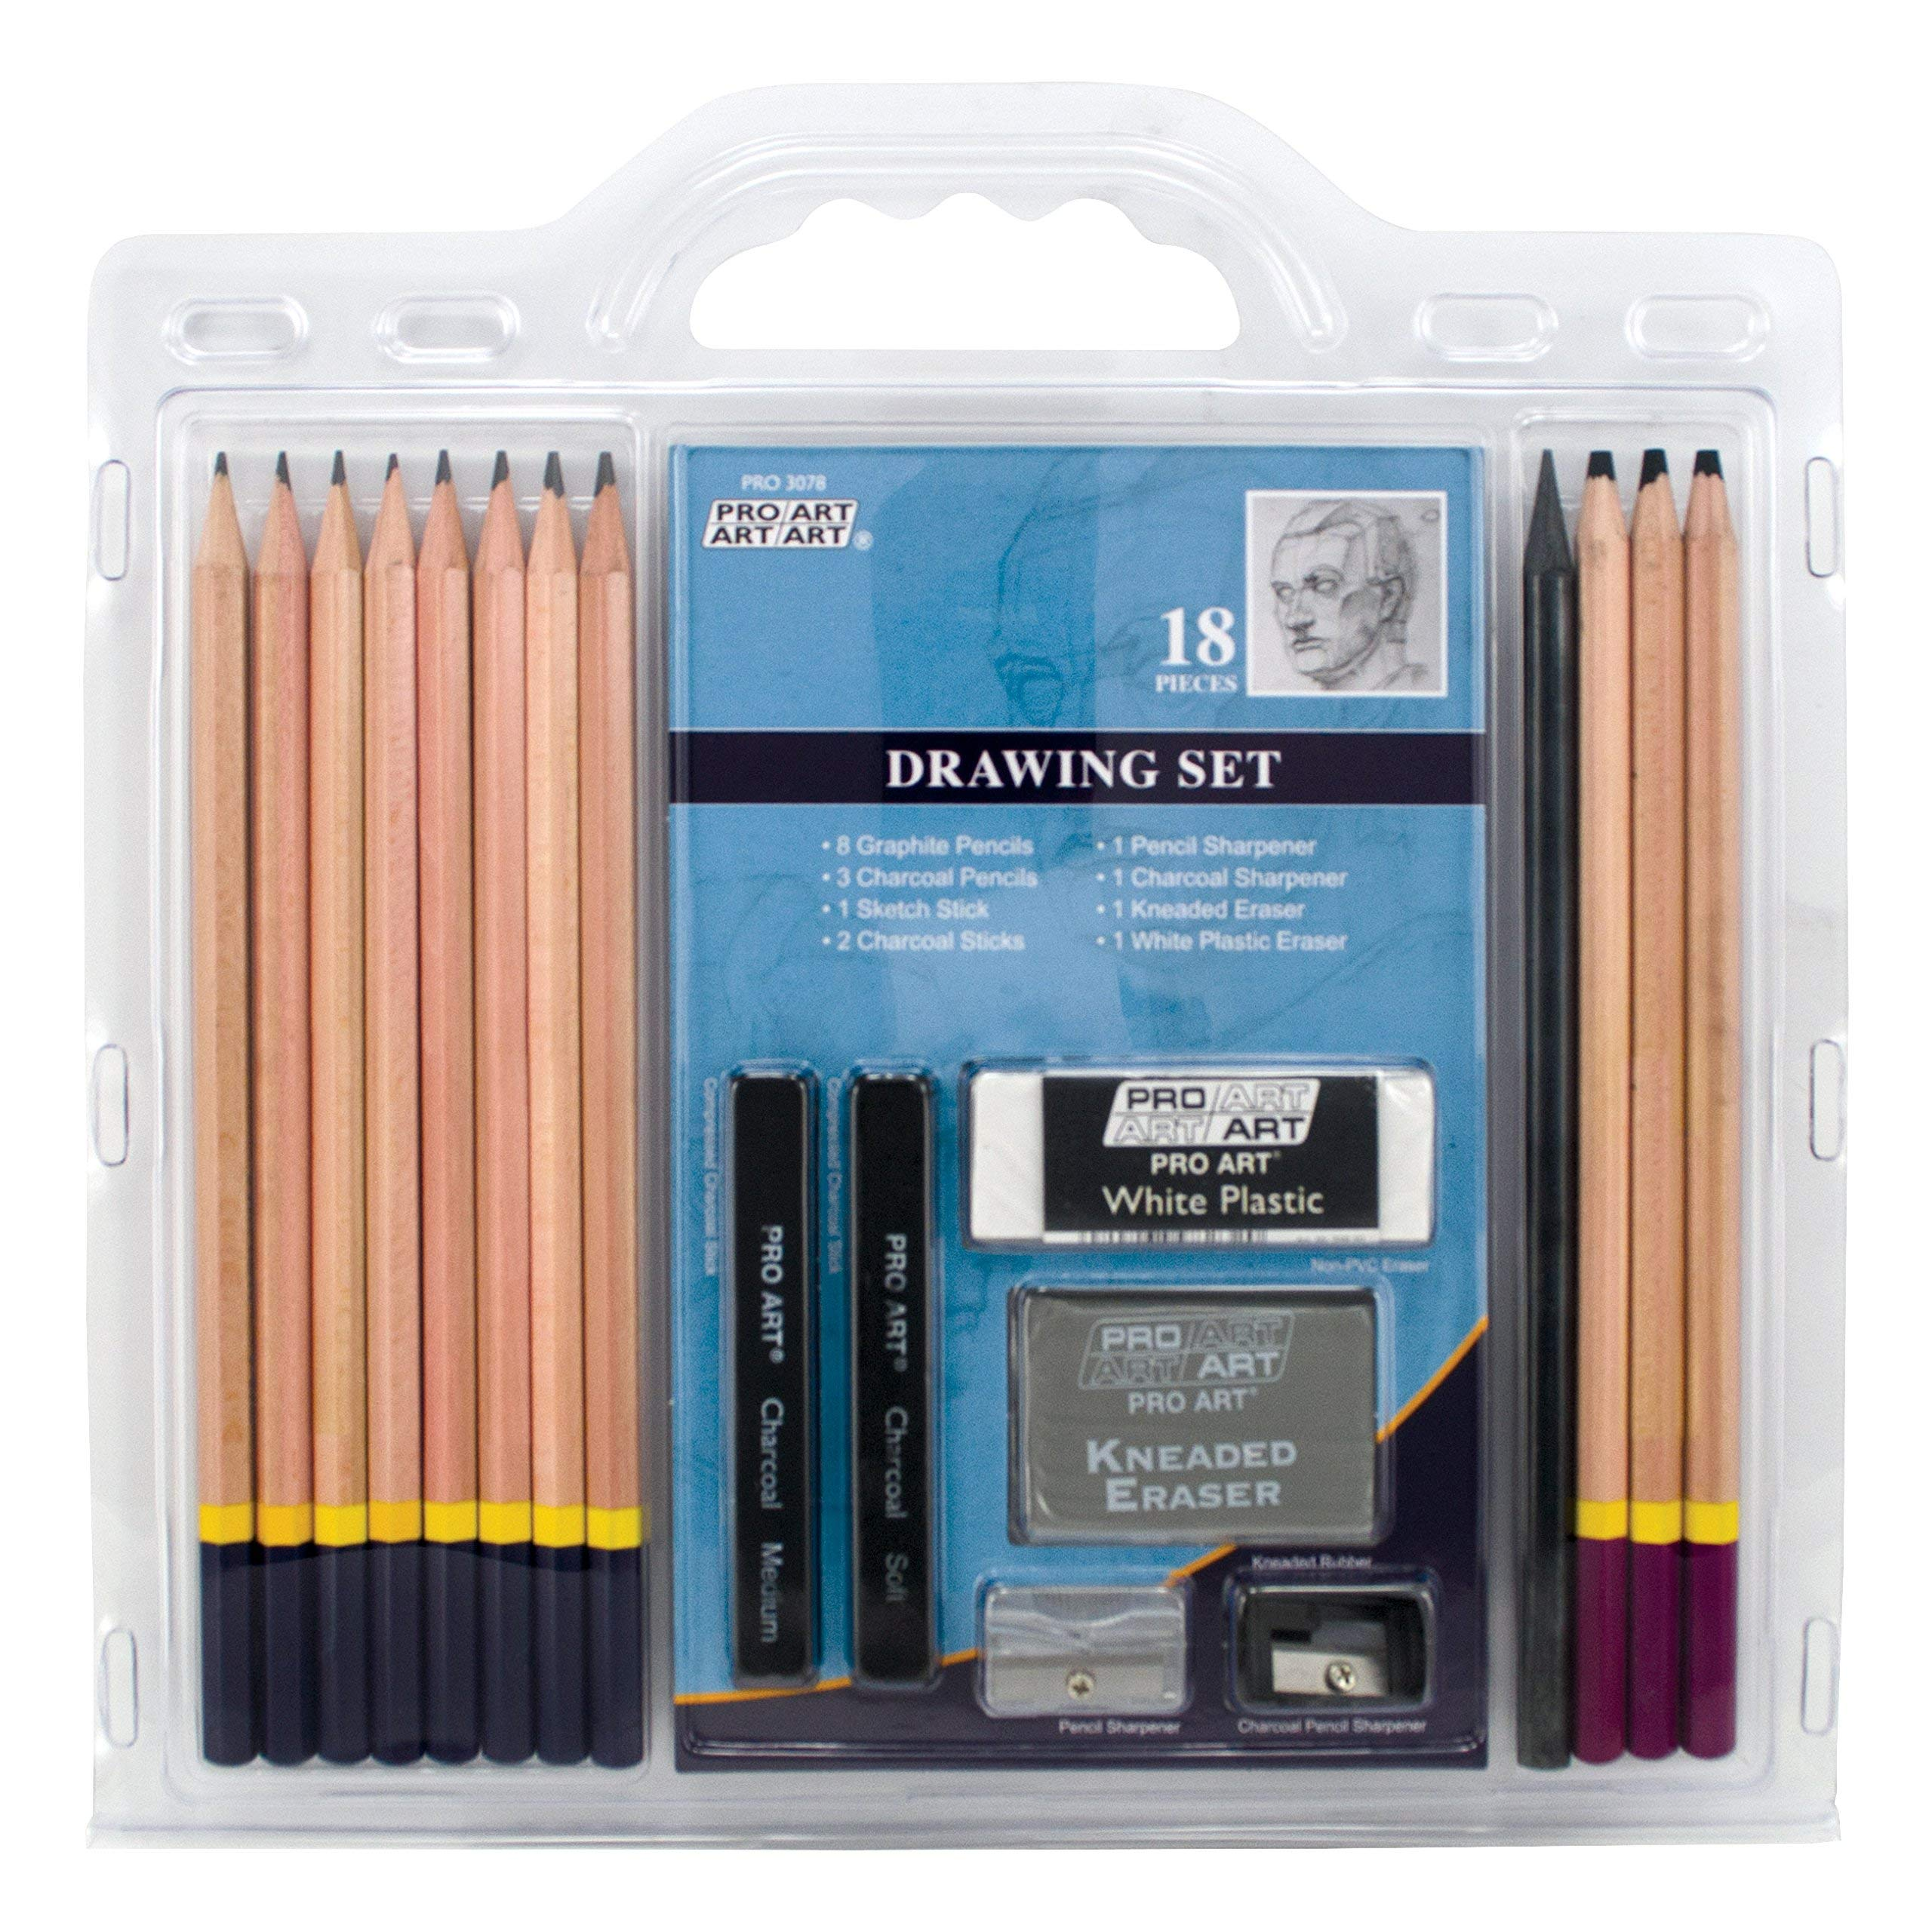 Pro Art 3078 18-Piece Sketch/Draw Pencil Set by Pro Art